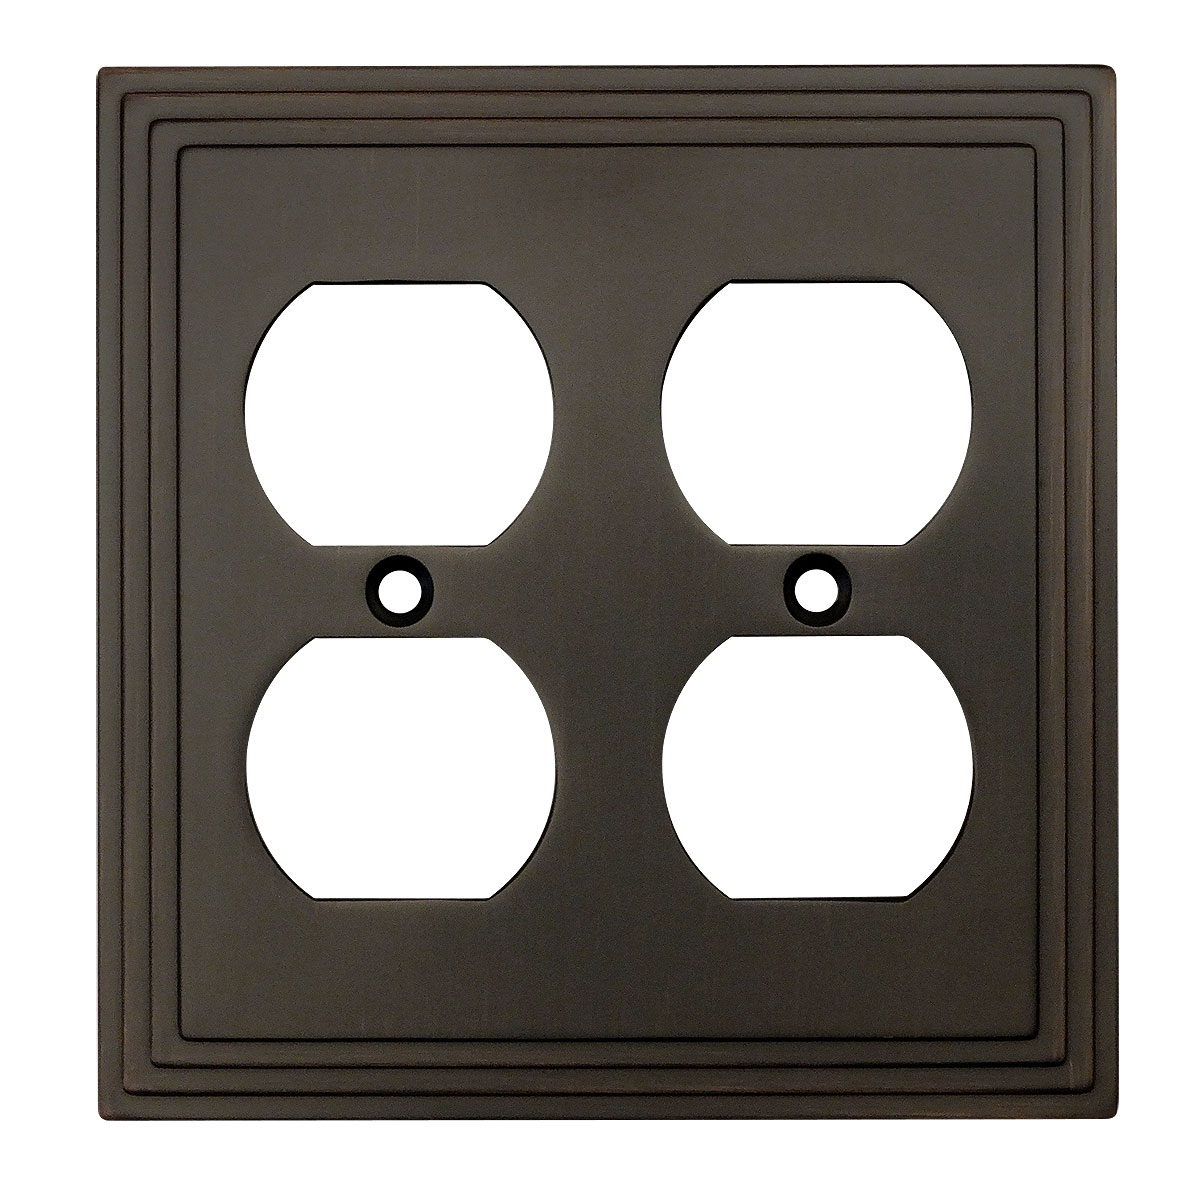 Cosmas 25012 Oil Rubbed Bronze Double Duplex Outlet Wall Plate